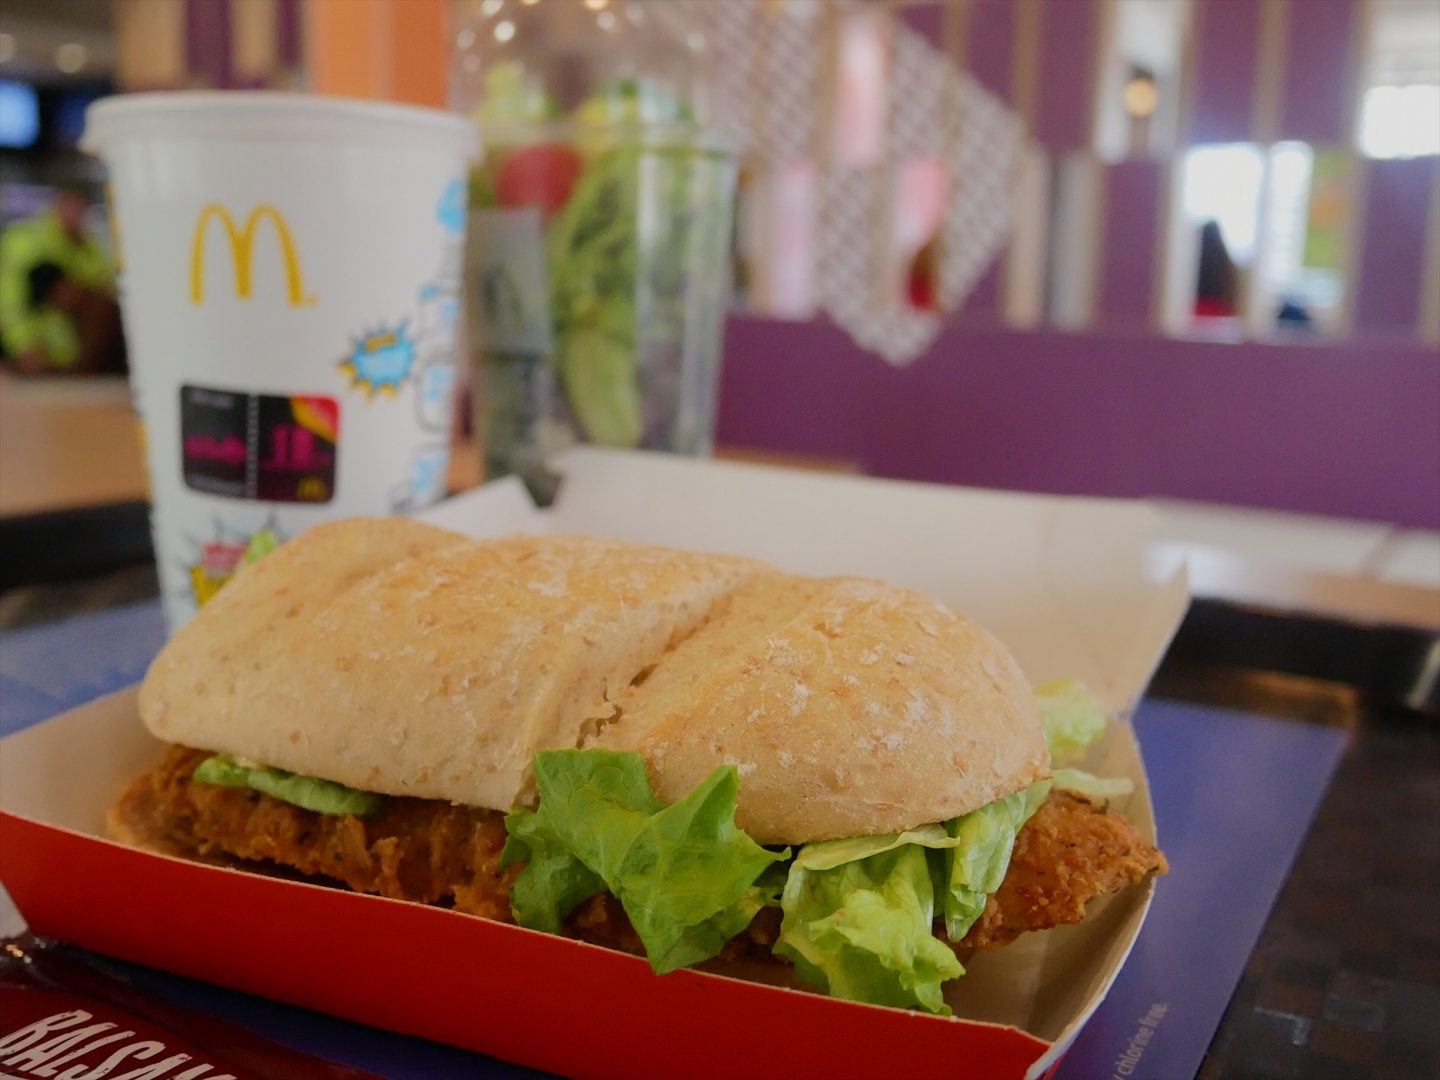 McChicken Sandwich, McDonald's soft drink and shaker salad